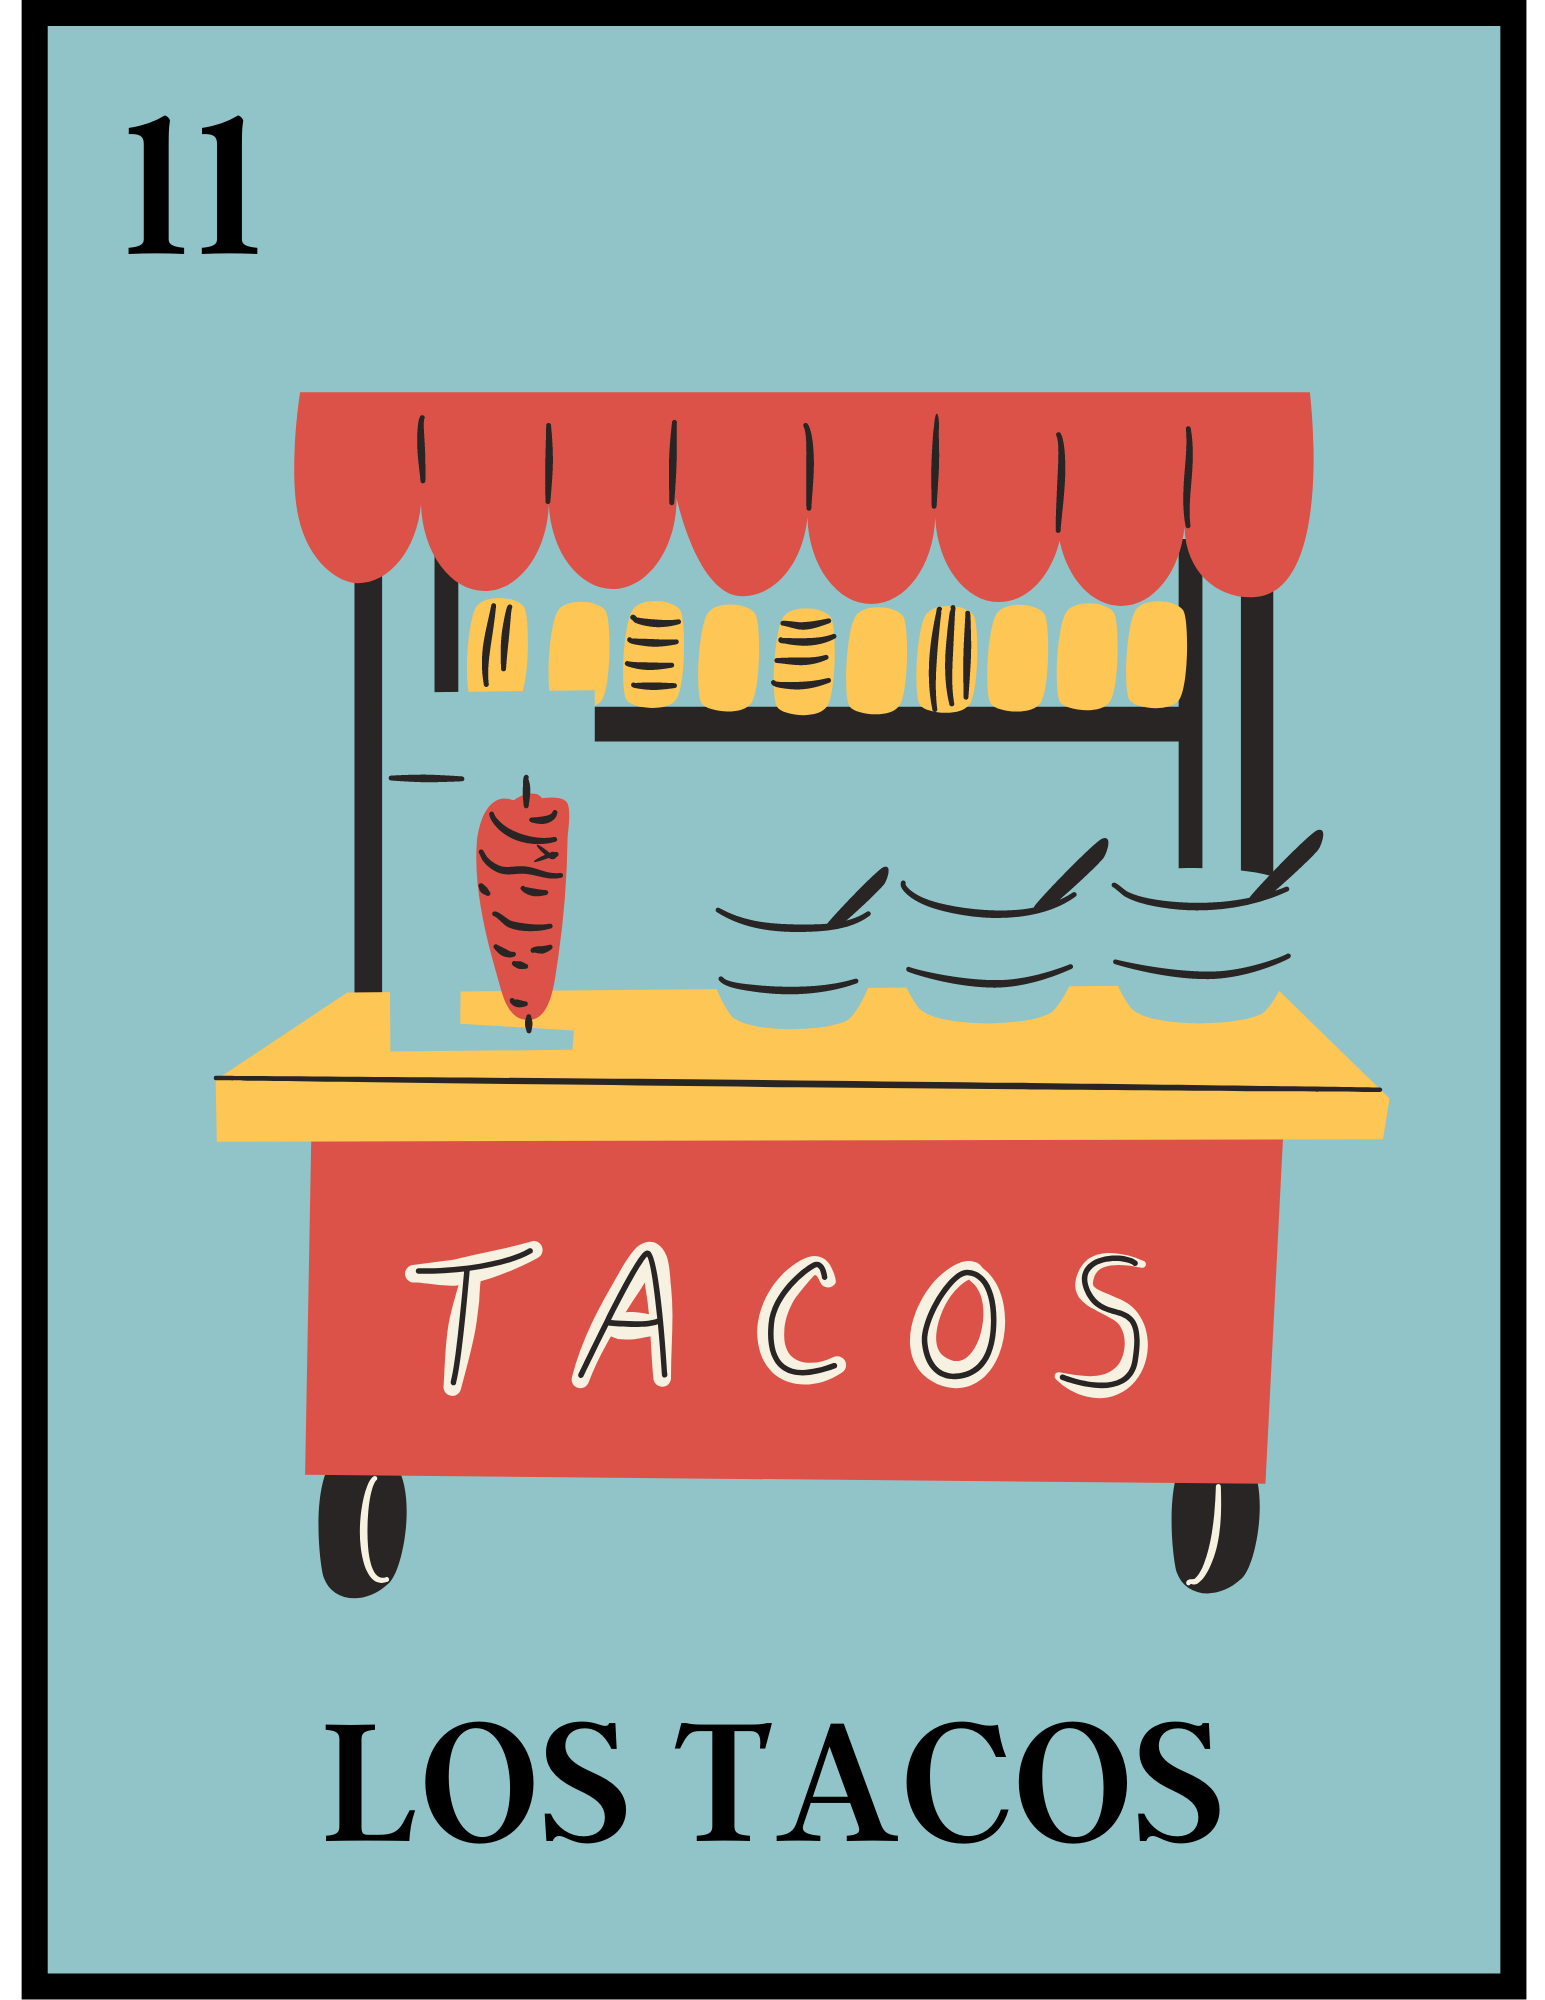 picture of a taco stand